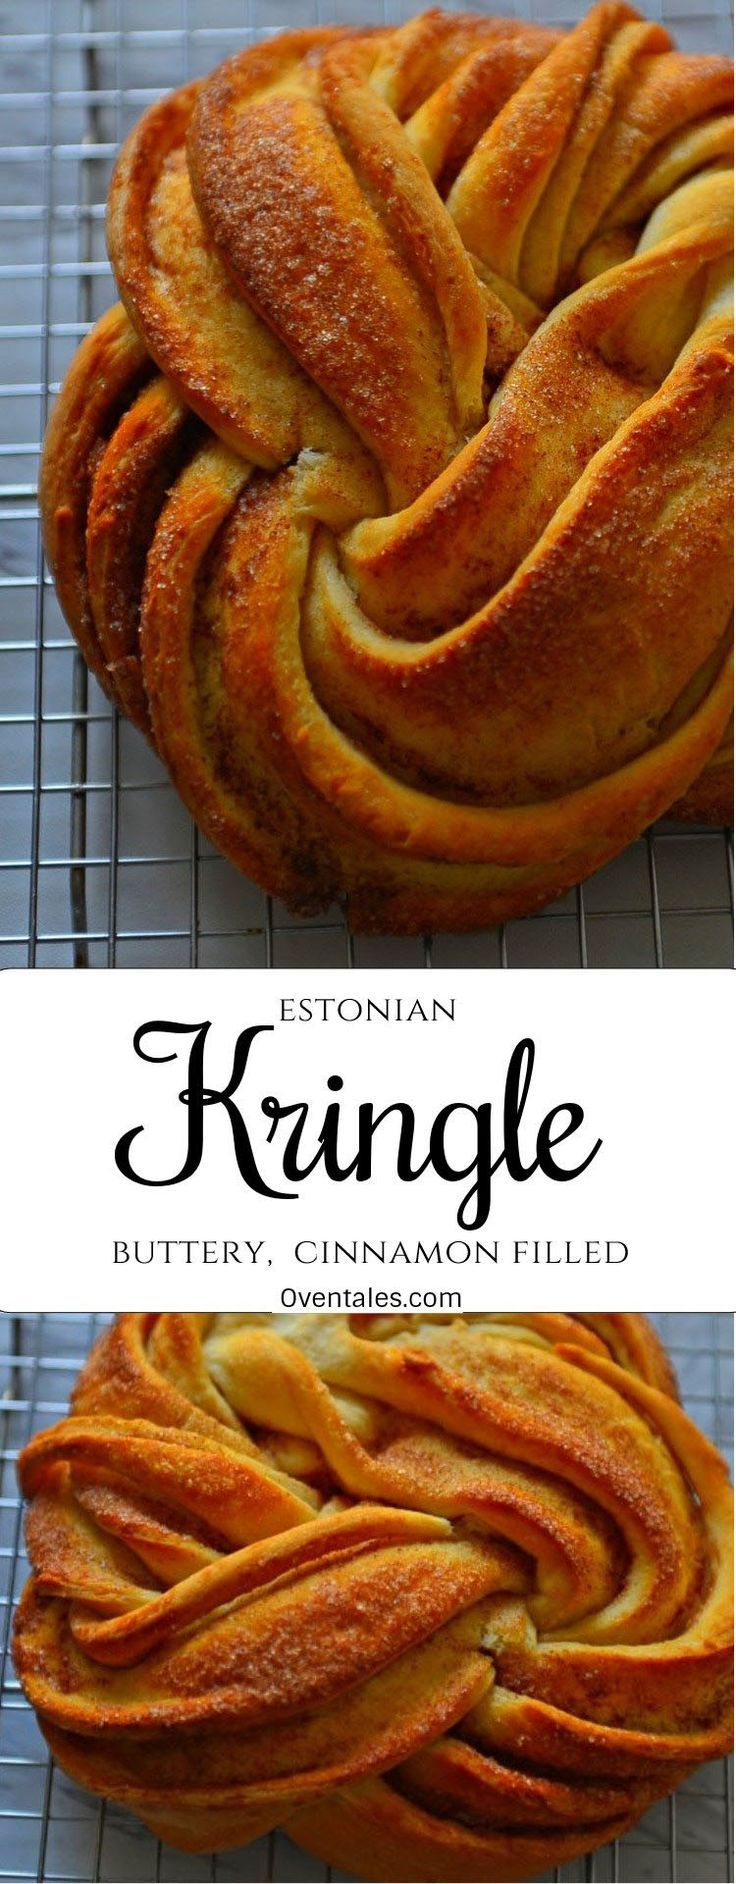 Estonian Kringle. A braided cinnamon roll rosette. It has a crunchy crust and soft buttery crumb. #breadrecipes #holidayrecipes #baking #russian #russianbraid